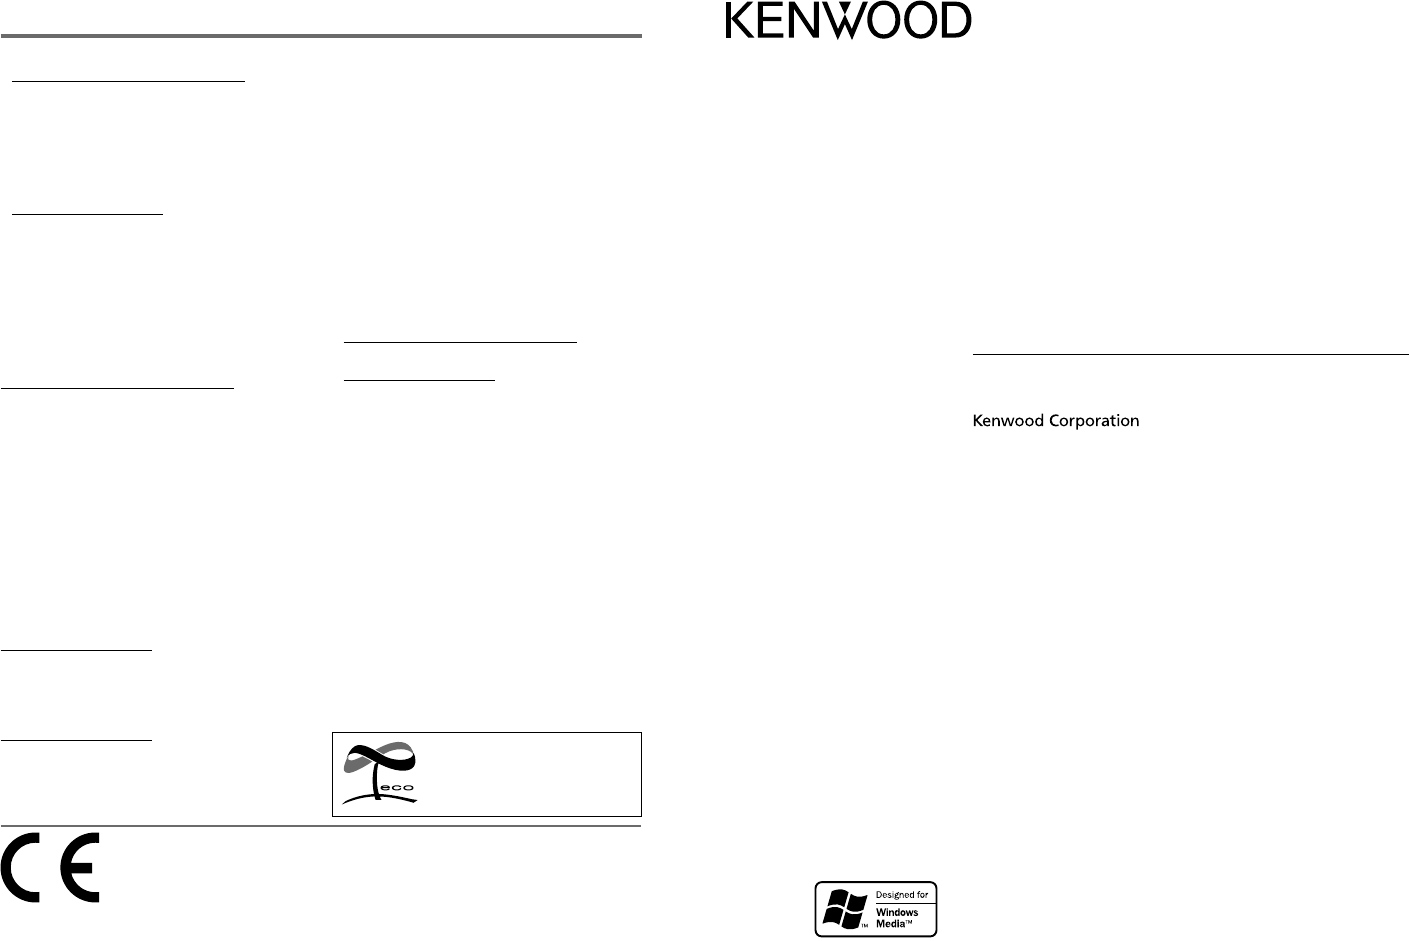 Kenwood Kdc Wiring Harness Diagram On Wiring Diagram For Kenwood Kdc